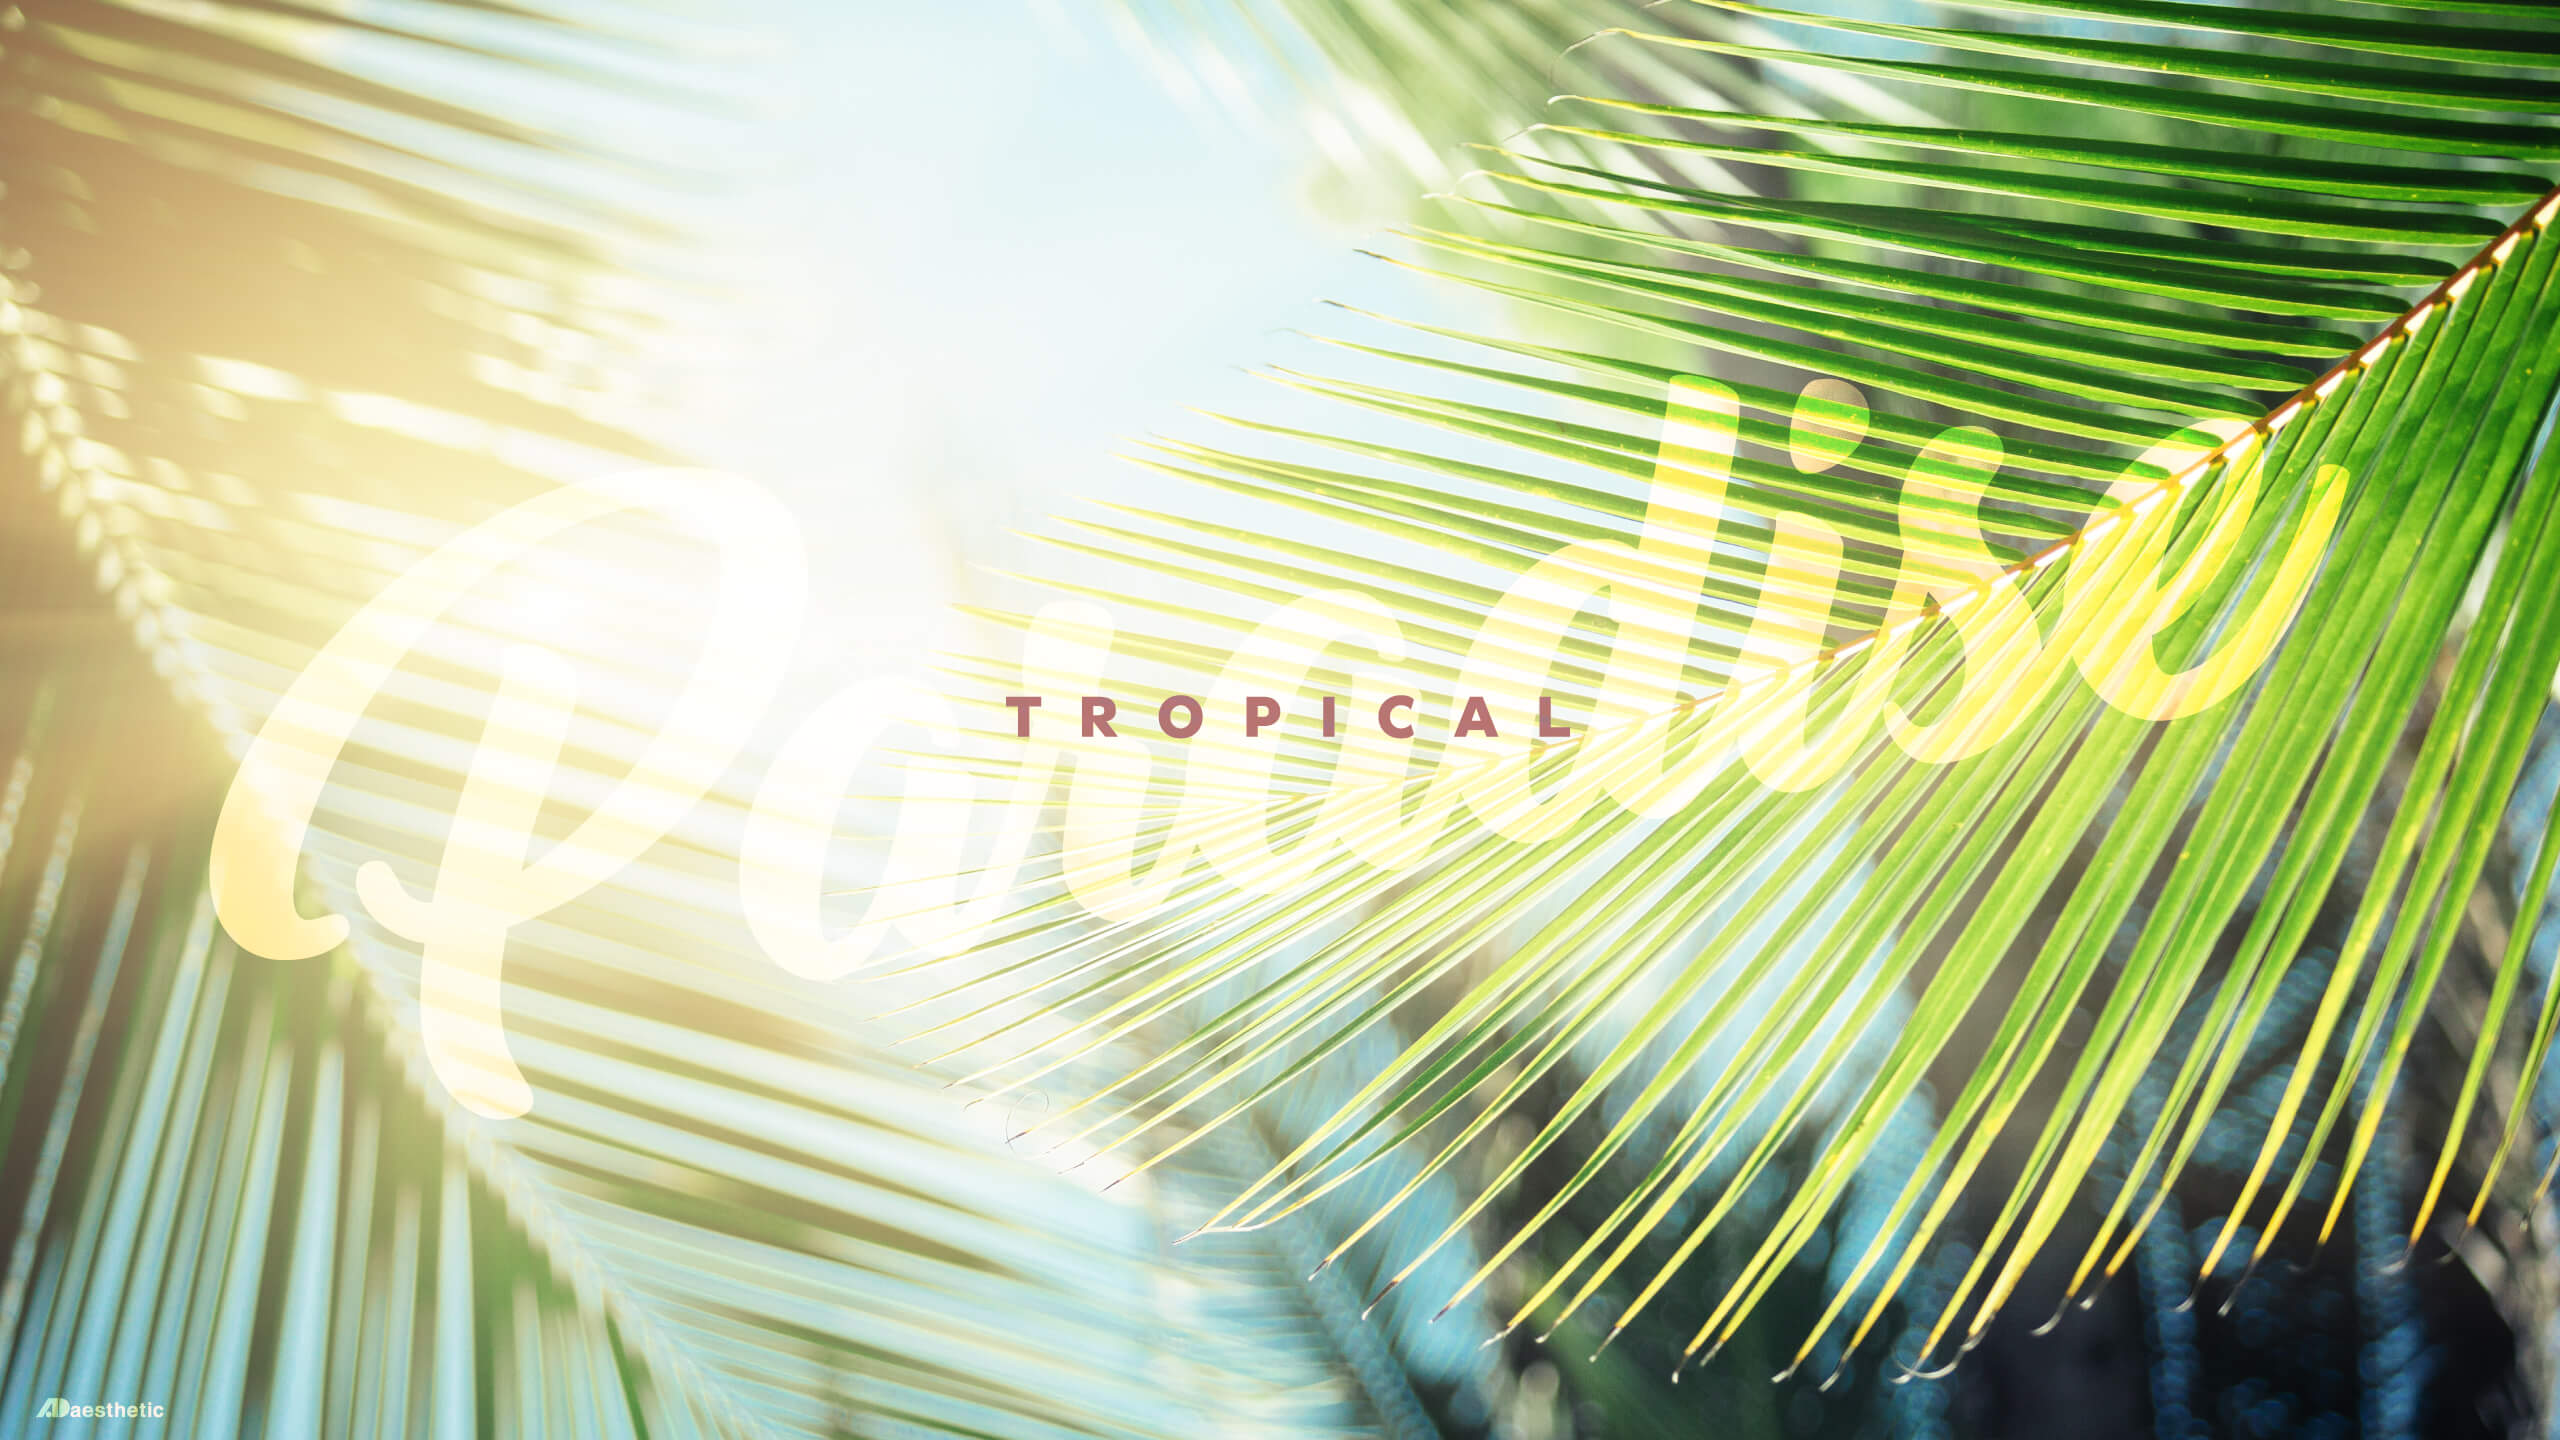 Free Desktop Download Tropical by Ashley AD Aesthetic